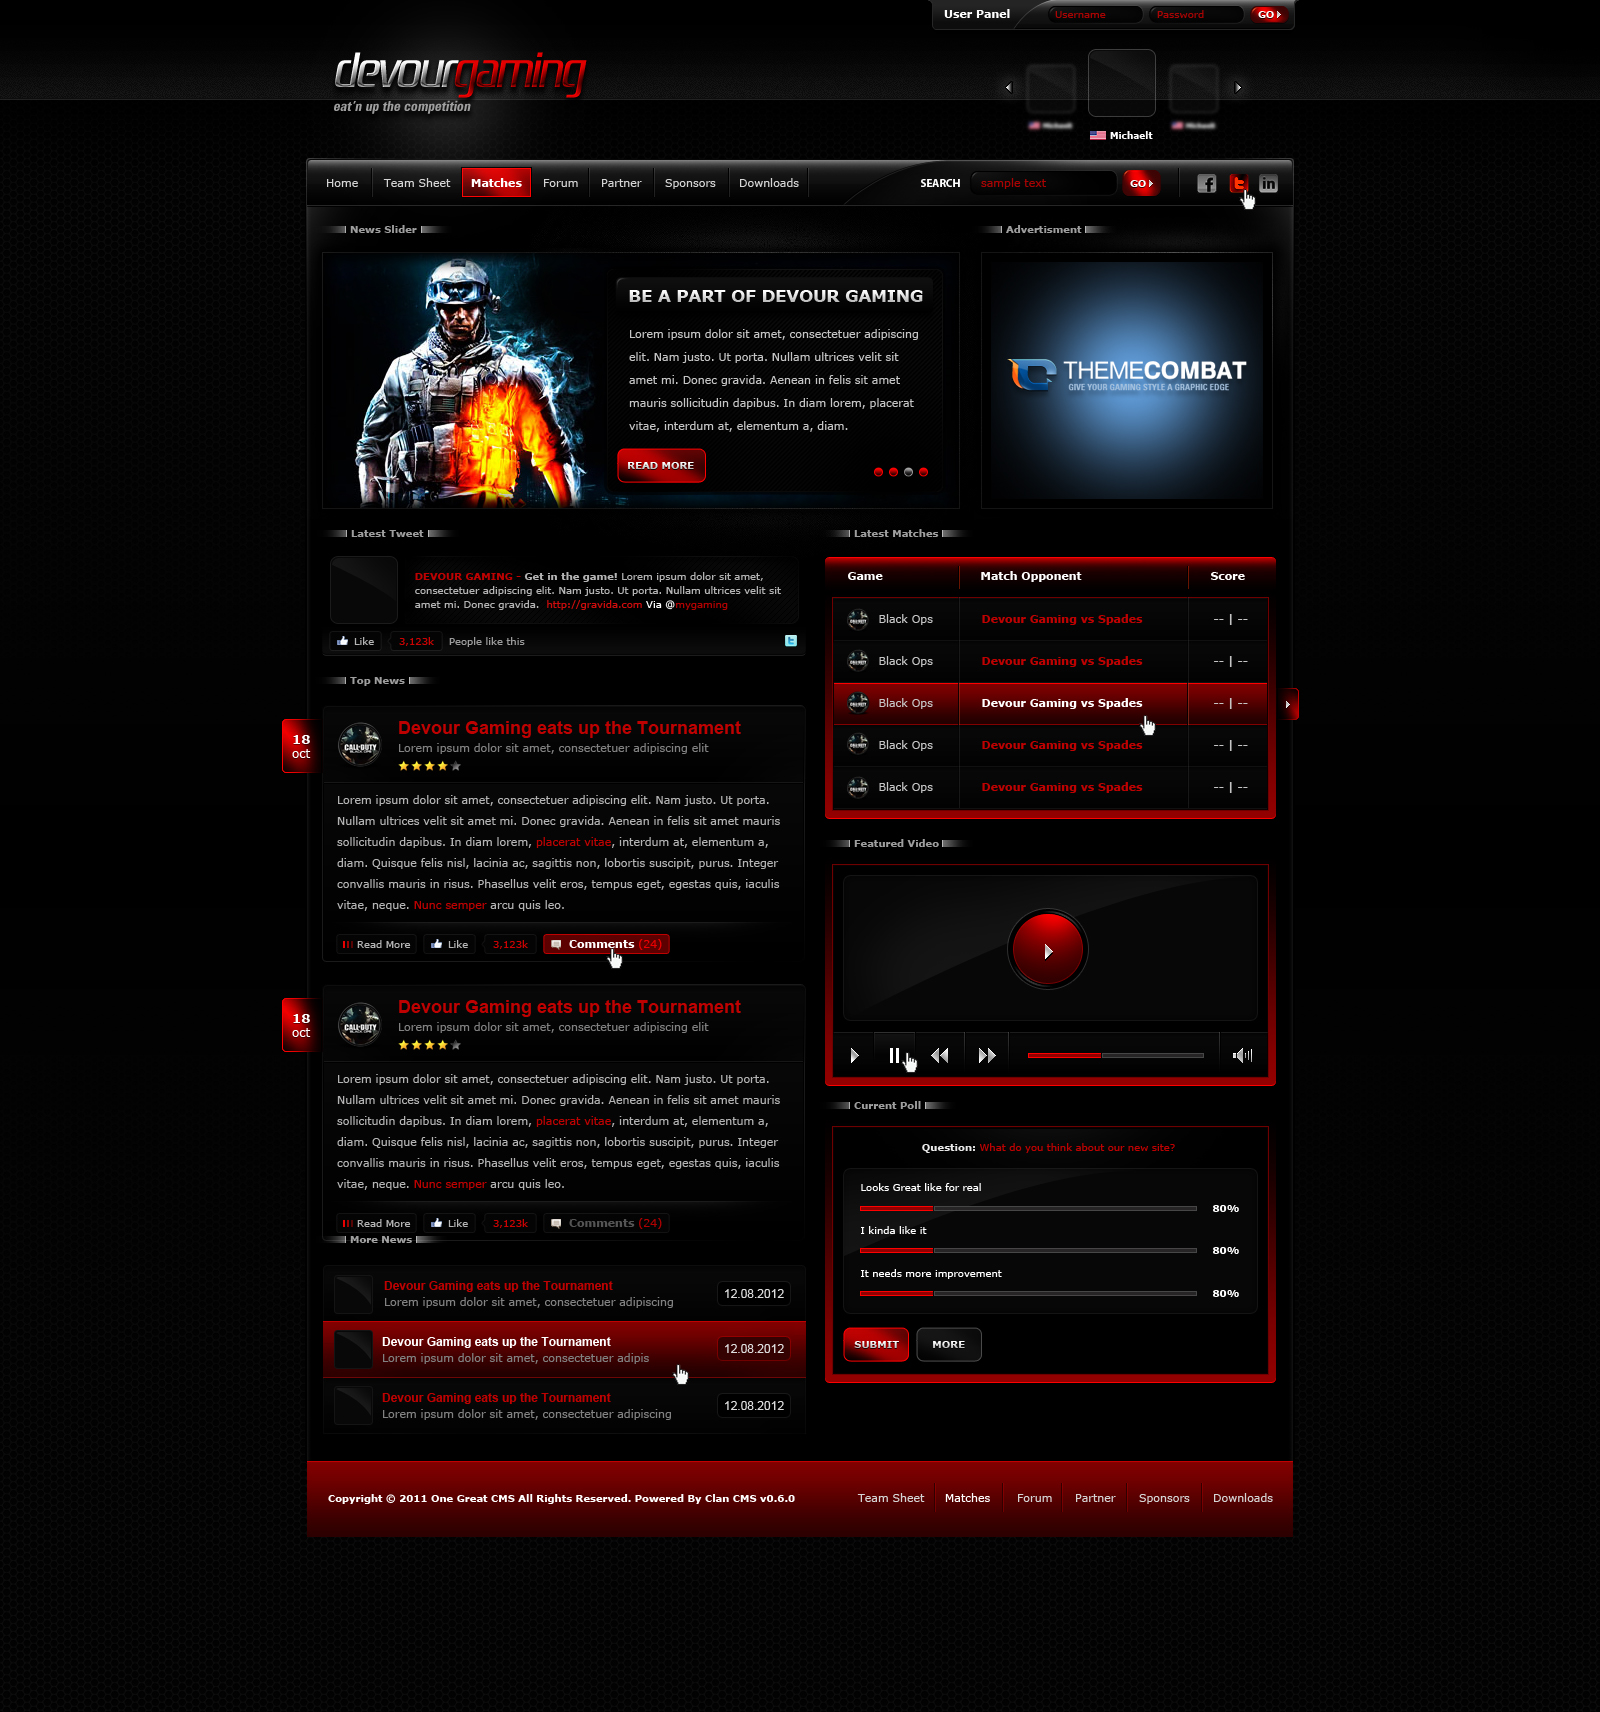 game maker templates download - devour gaming template by michaeltinnin on deviantart